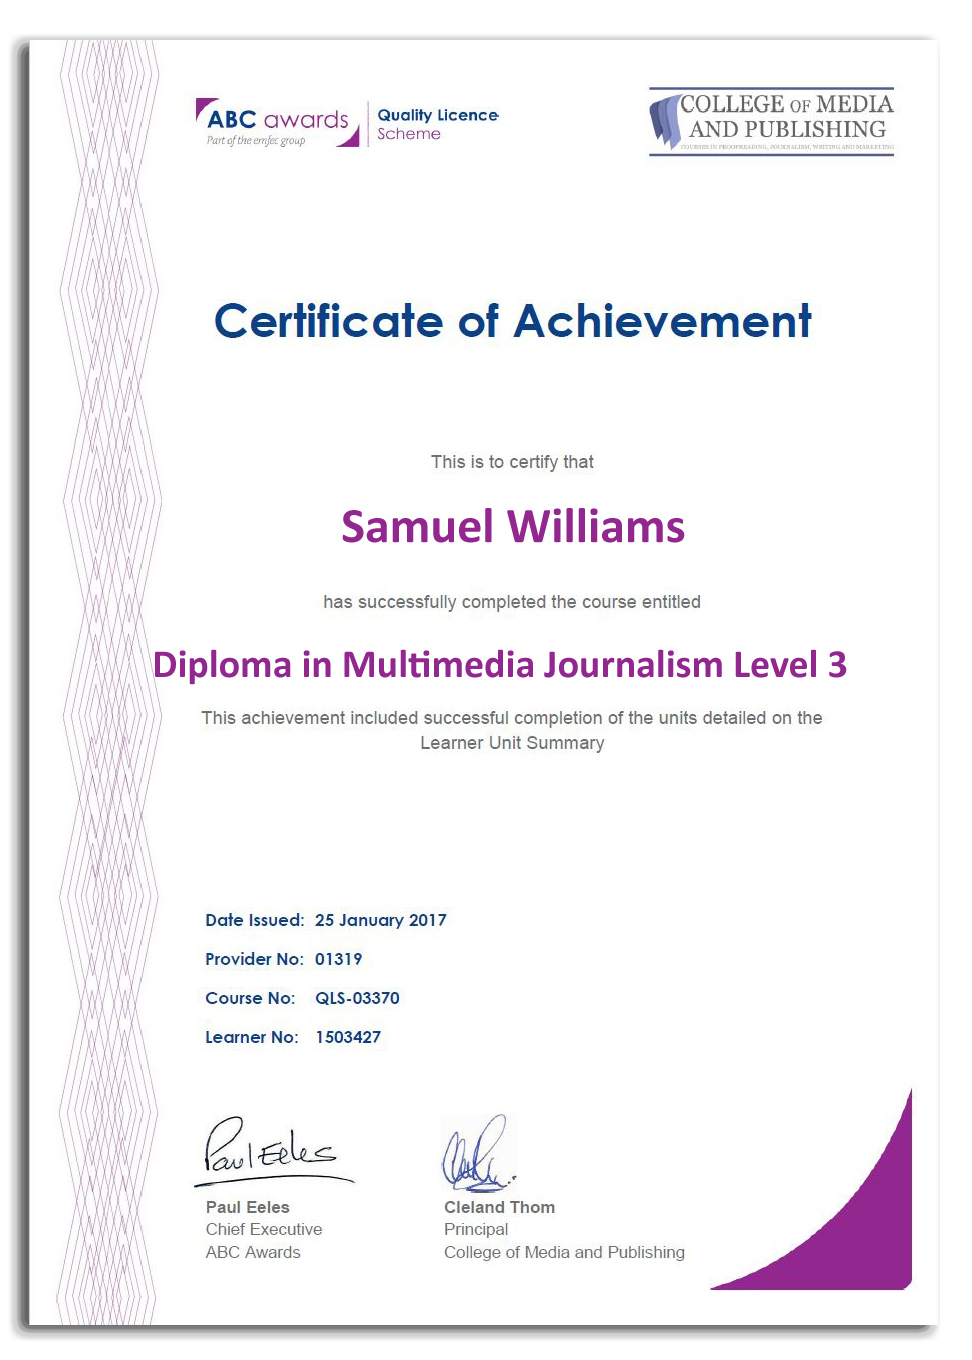 Multimedia journalism course certificate